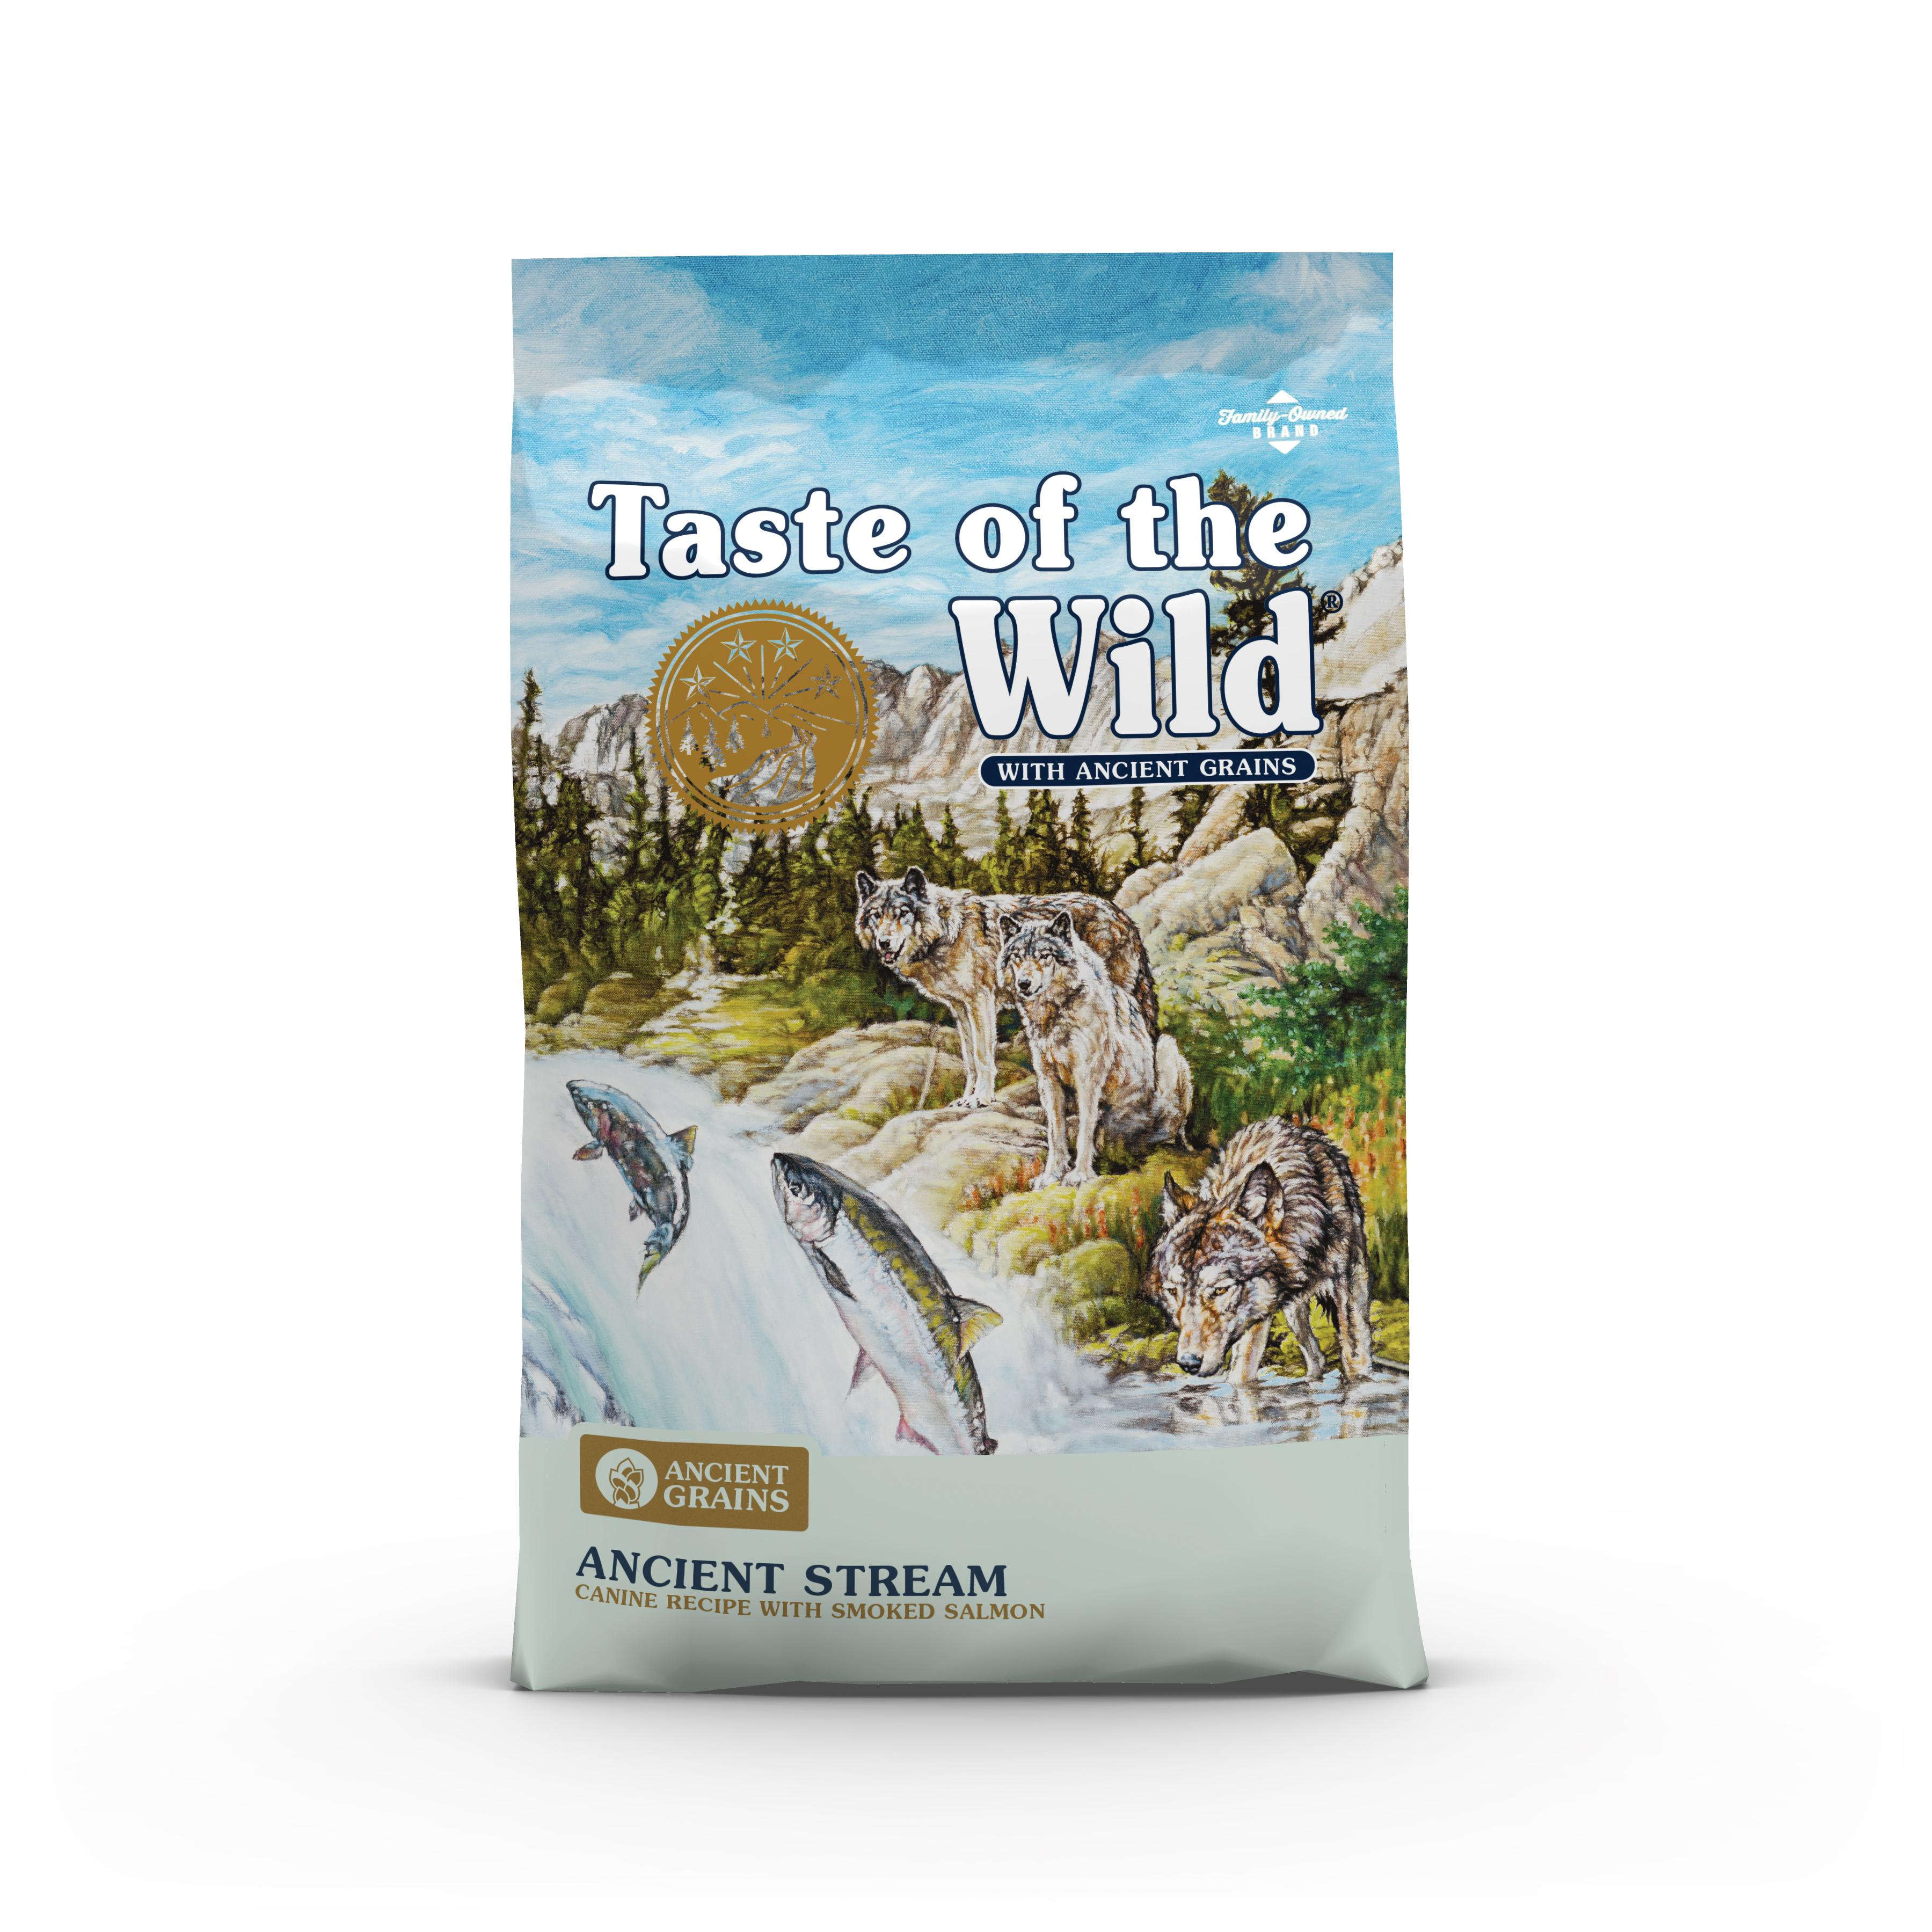 Taste of the Wild Ancient Stream with Ancient Grains Dry Dog Food, 28-lb